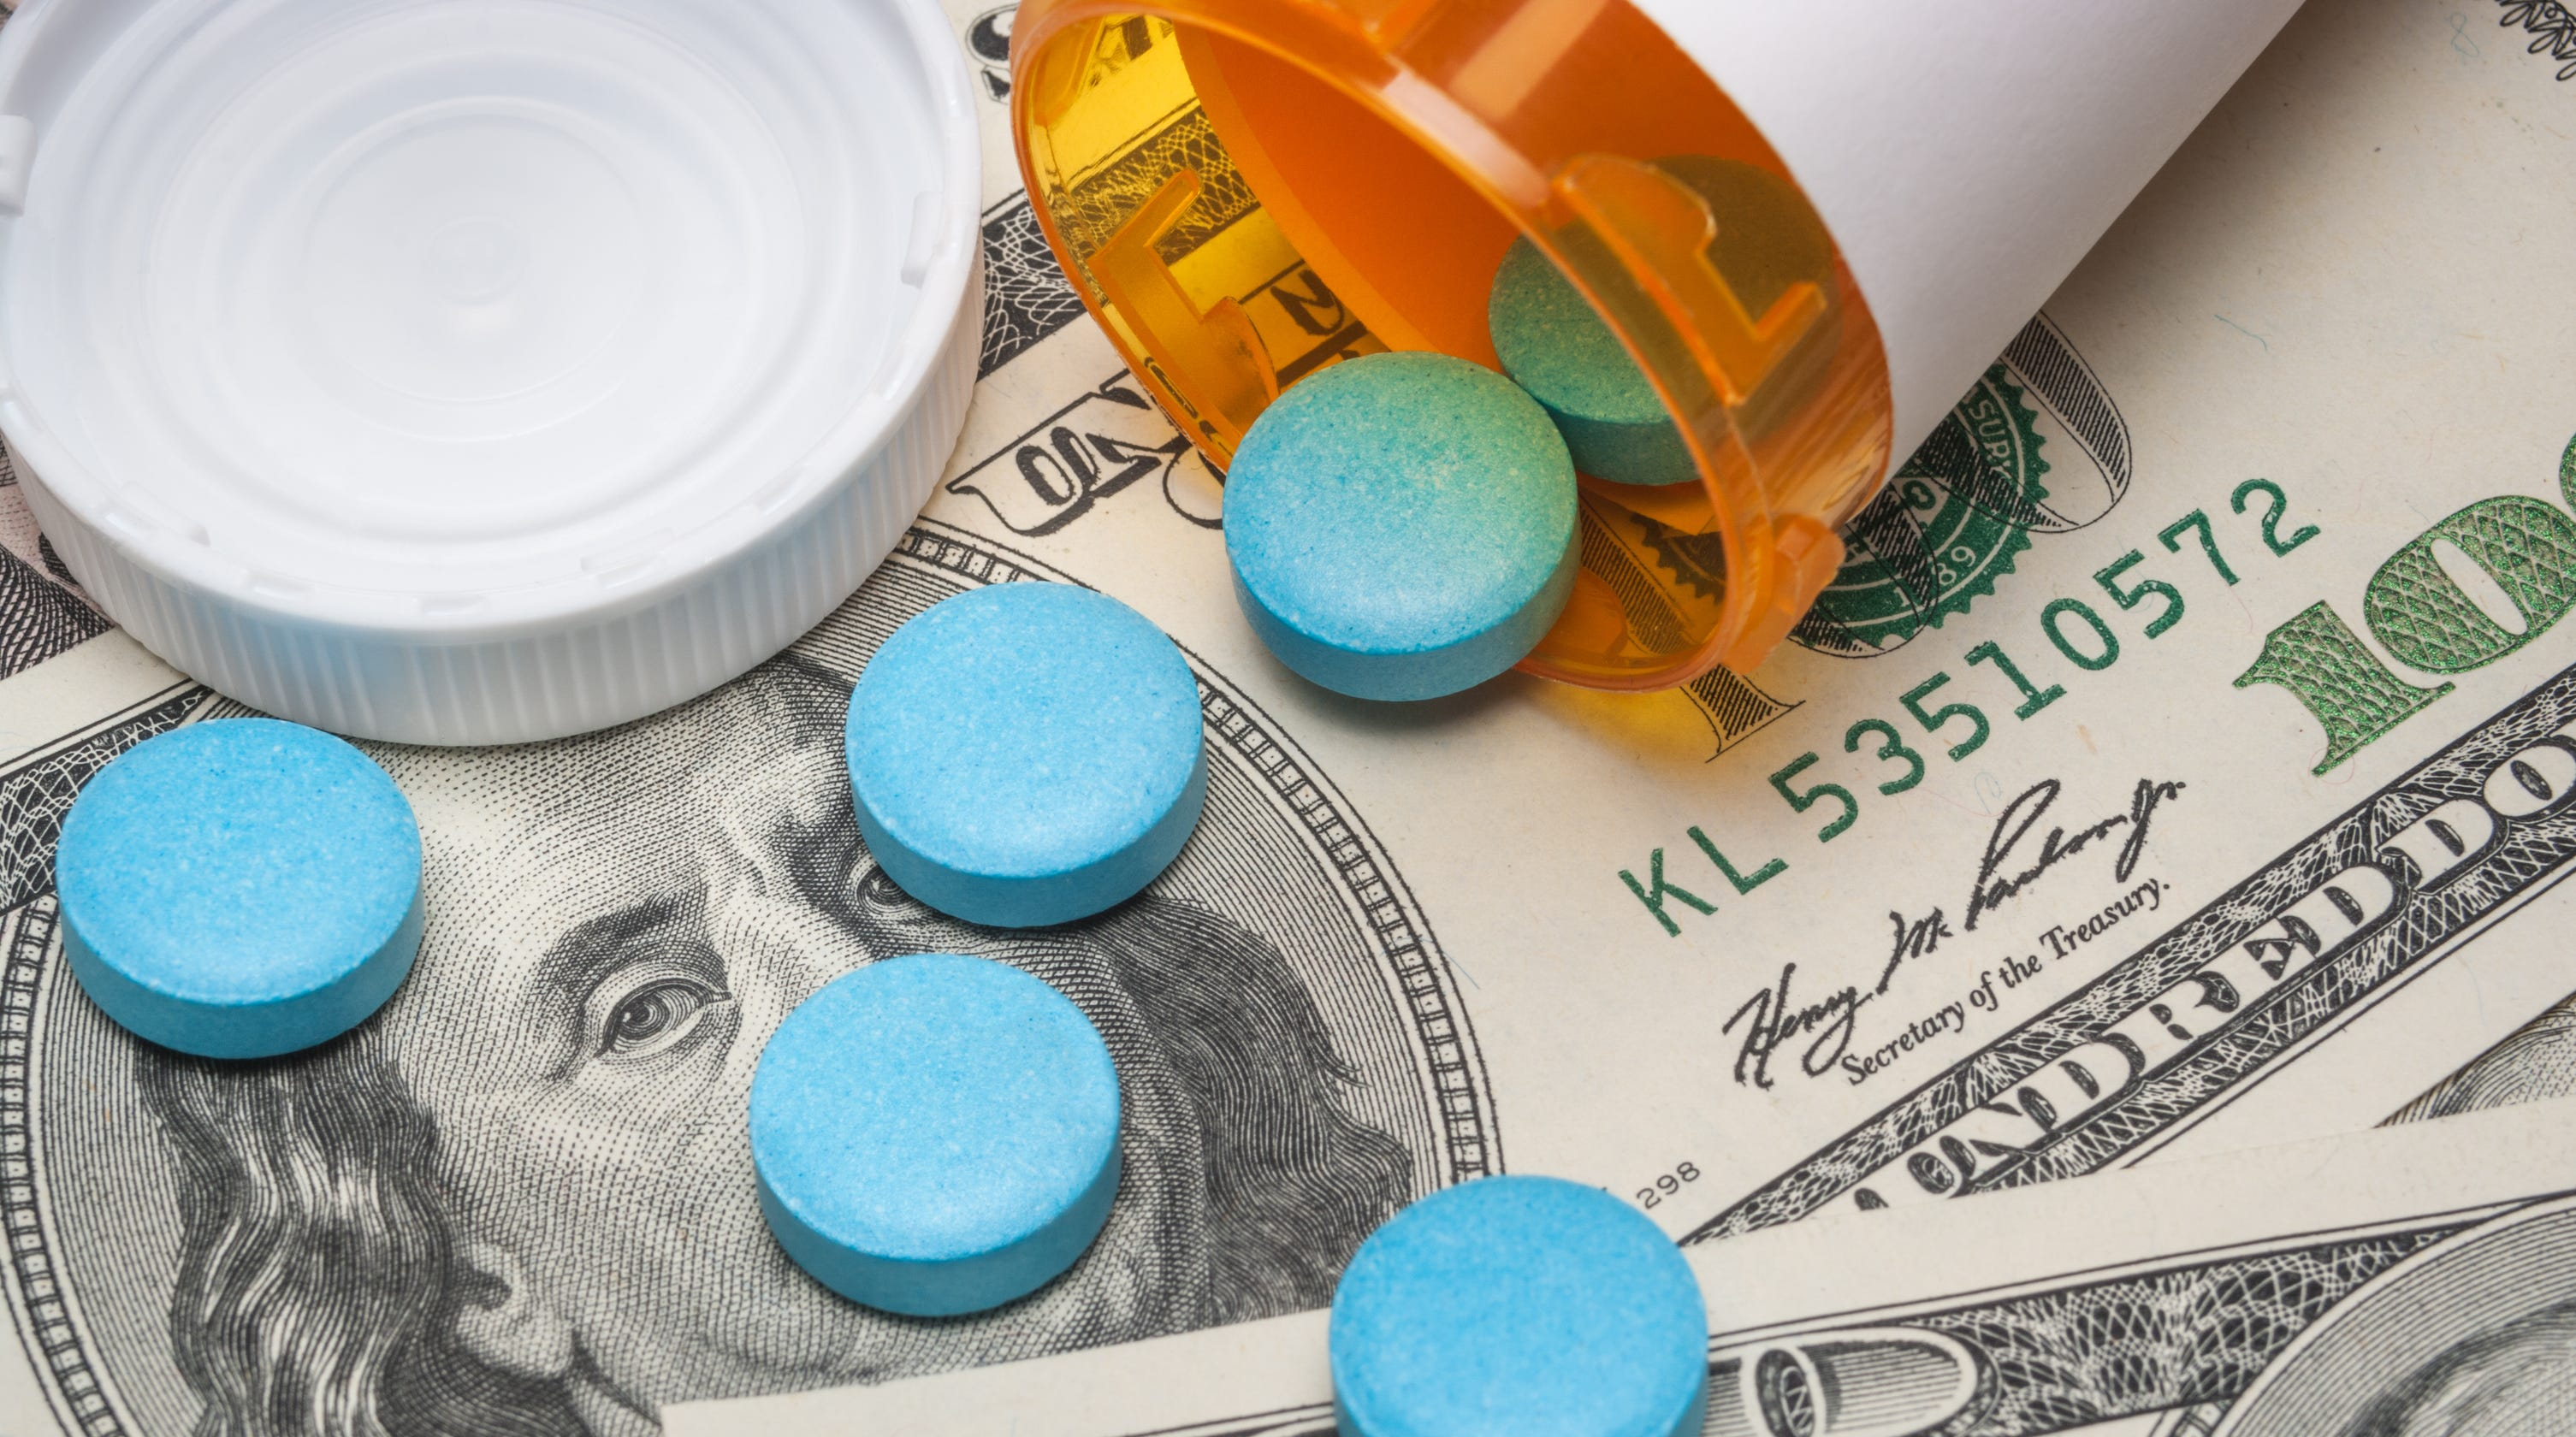 Rising health costs? Blame brand-name specialty drugs